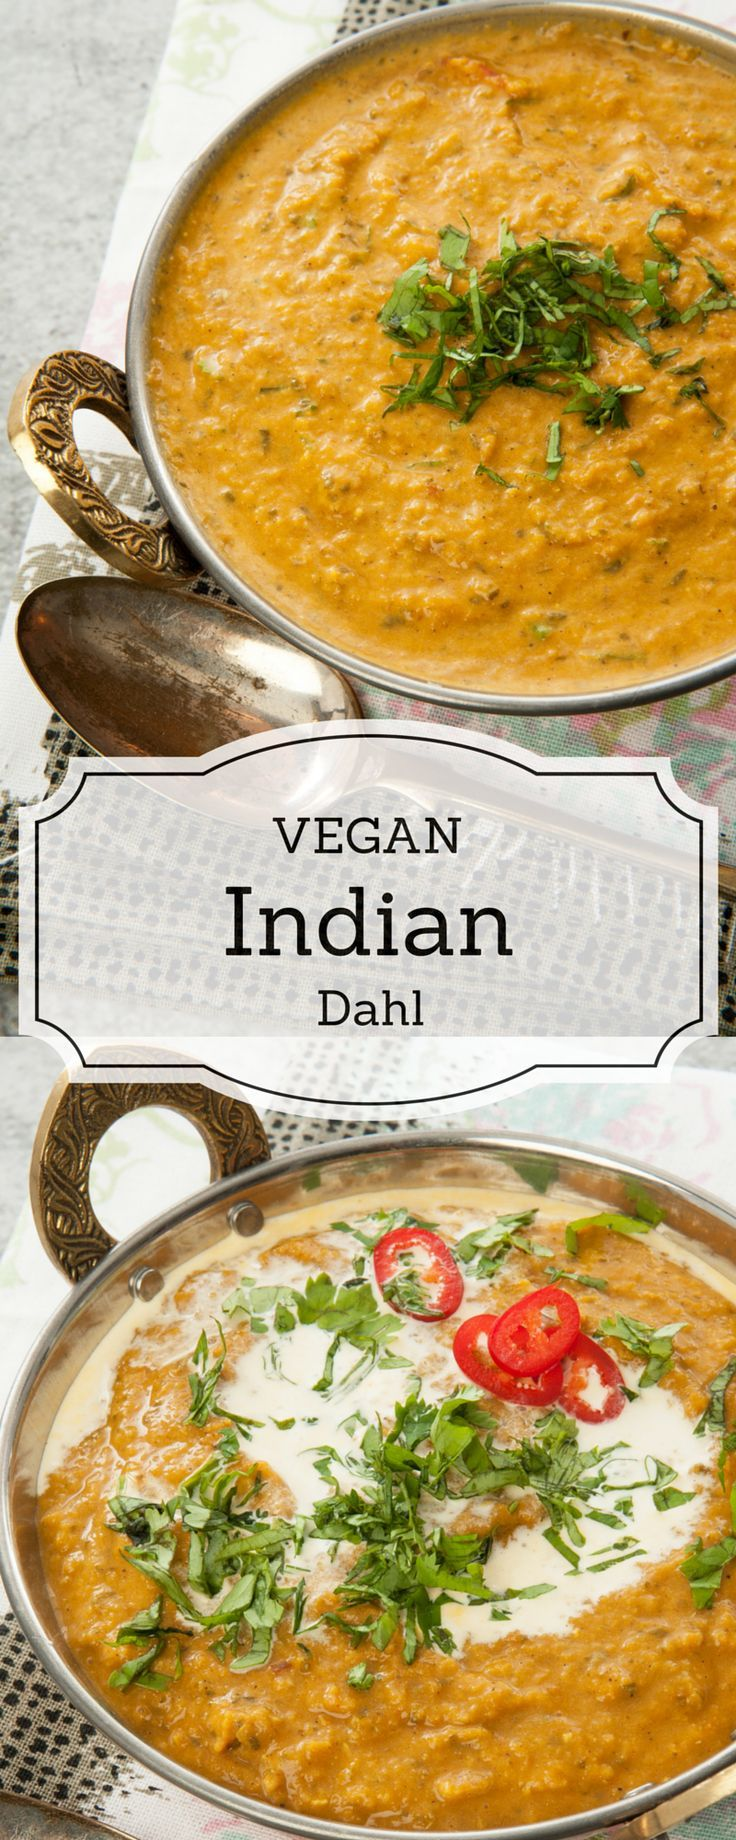 Vegan indian dahl tasty comfort food receta estufa for Comida sin estufa